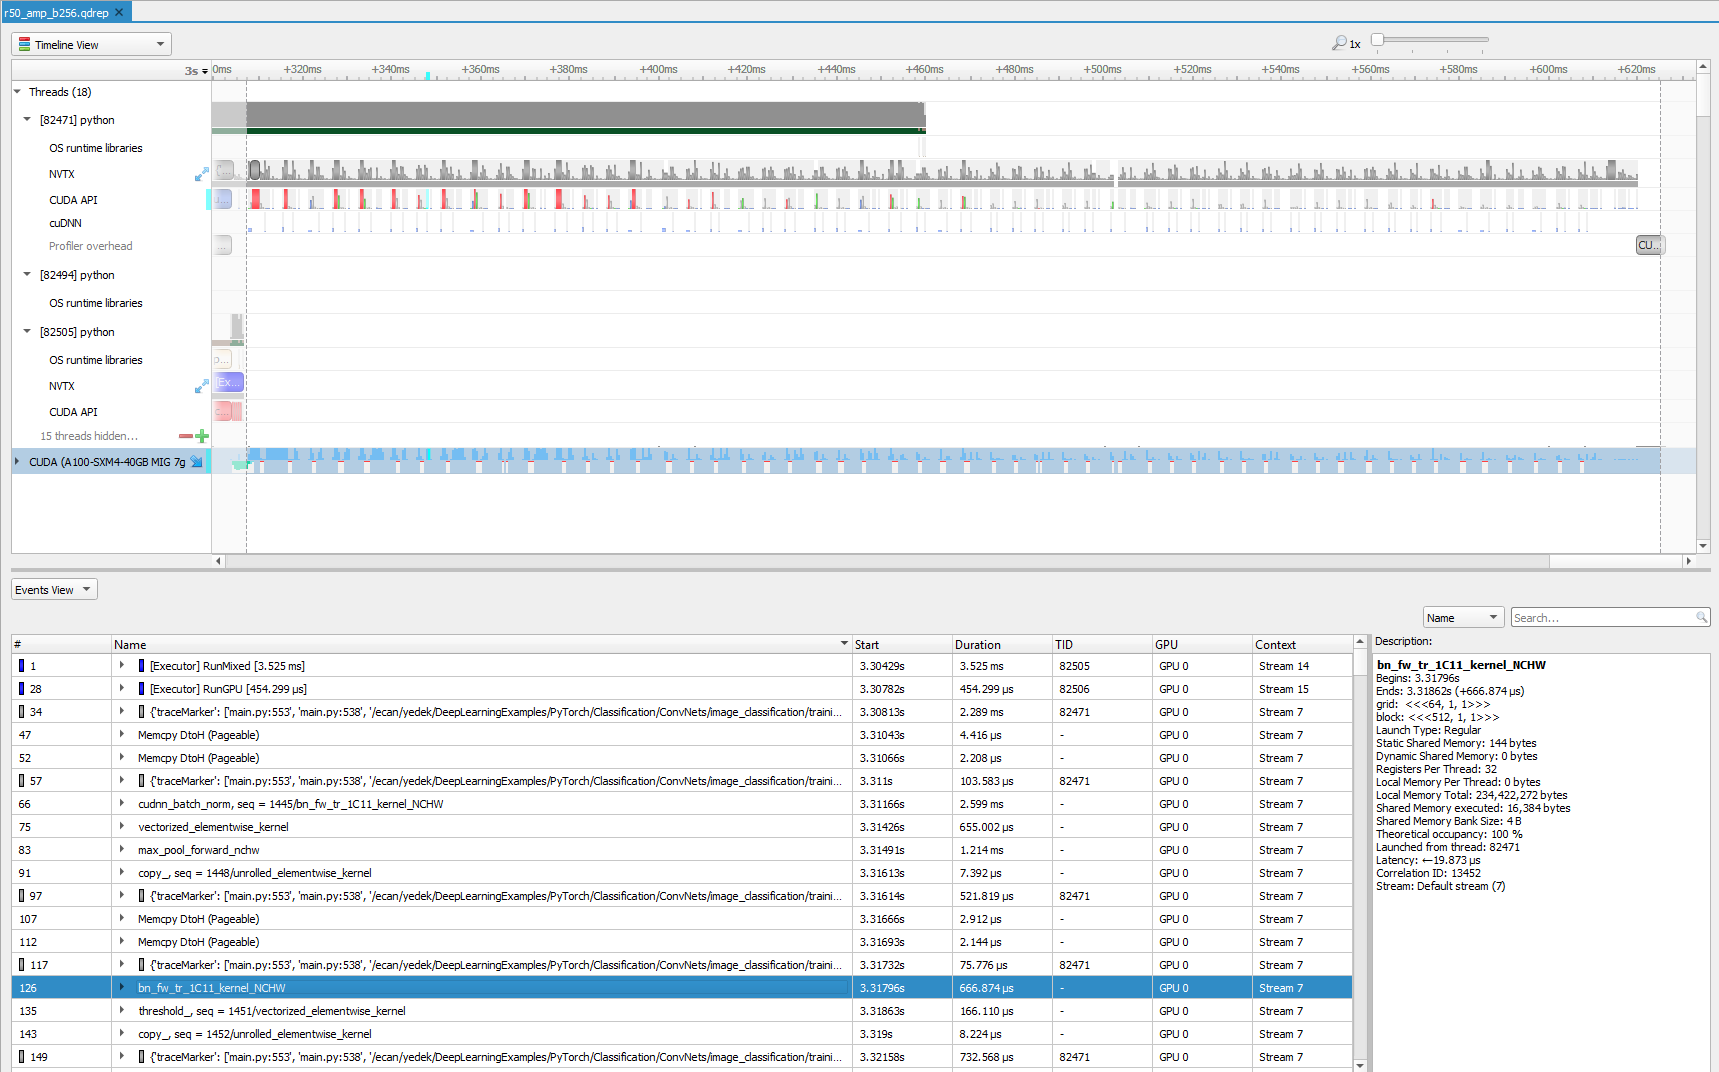 This figure is an overview of the user interface of the NVIDIA Nsight Systems tool.